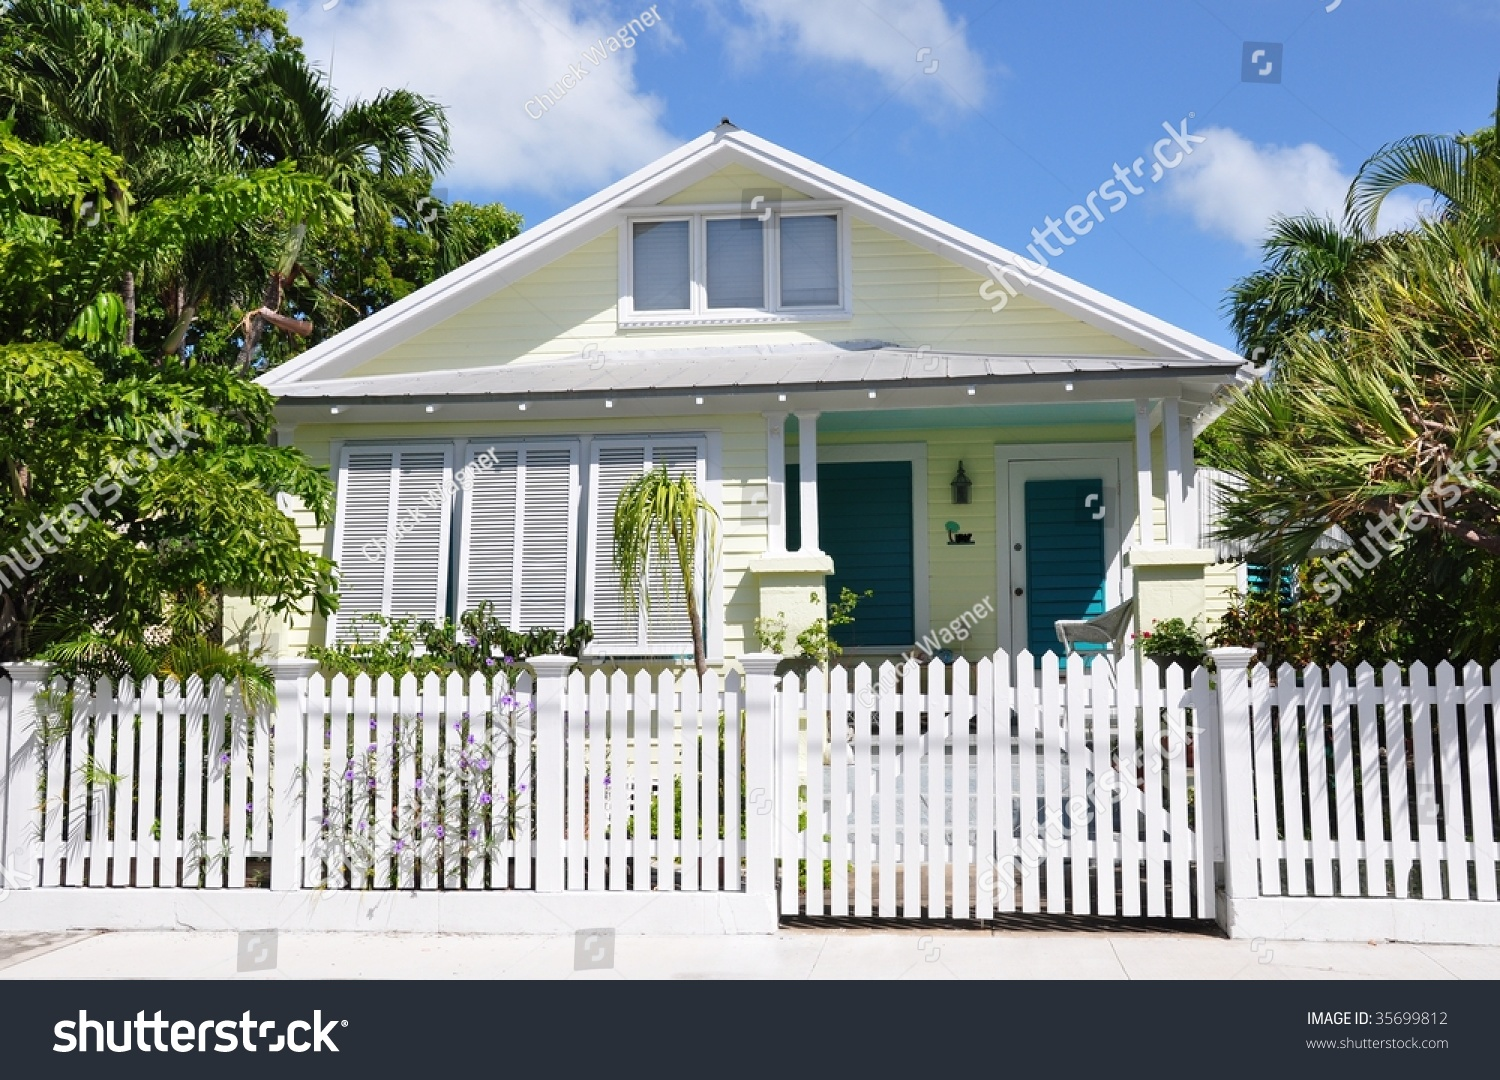 Key west style architecture stock photo 35699812 for Key west style architecture